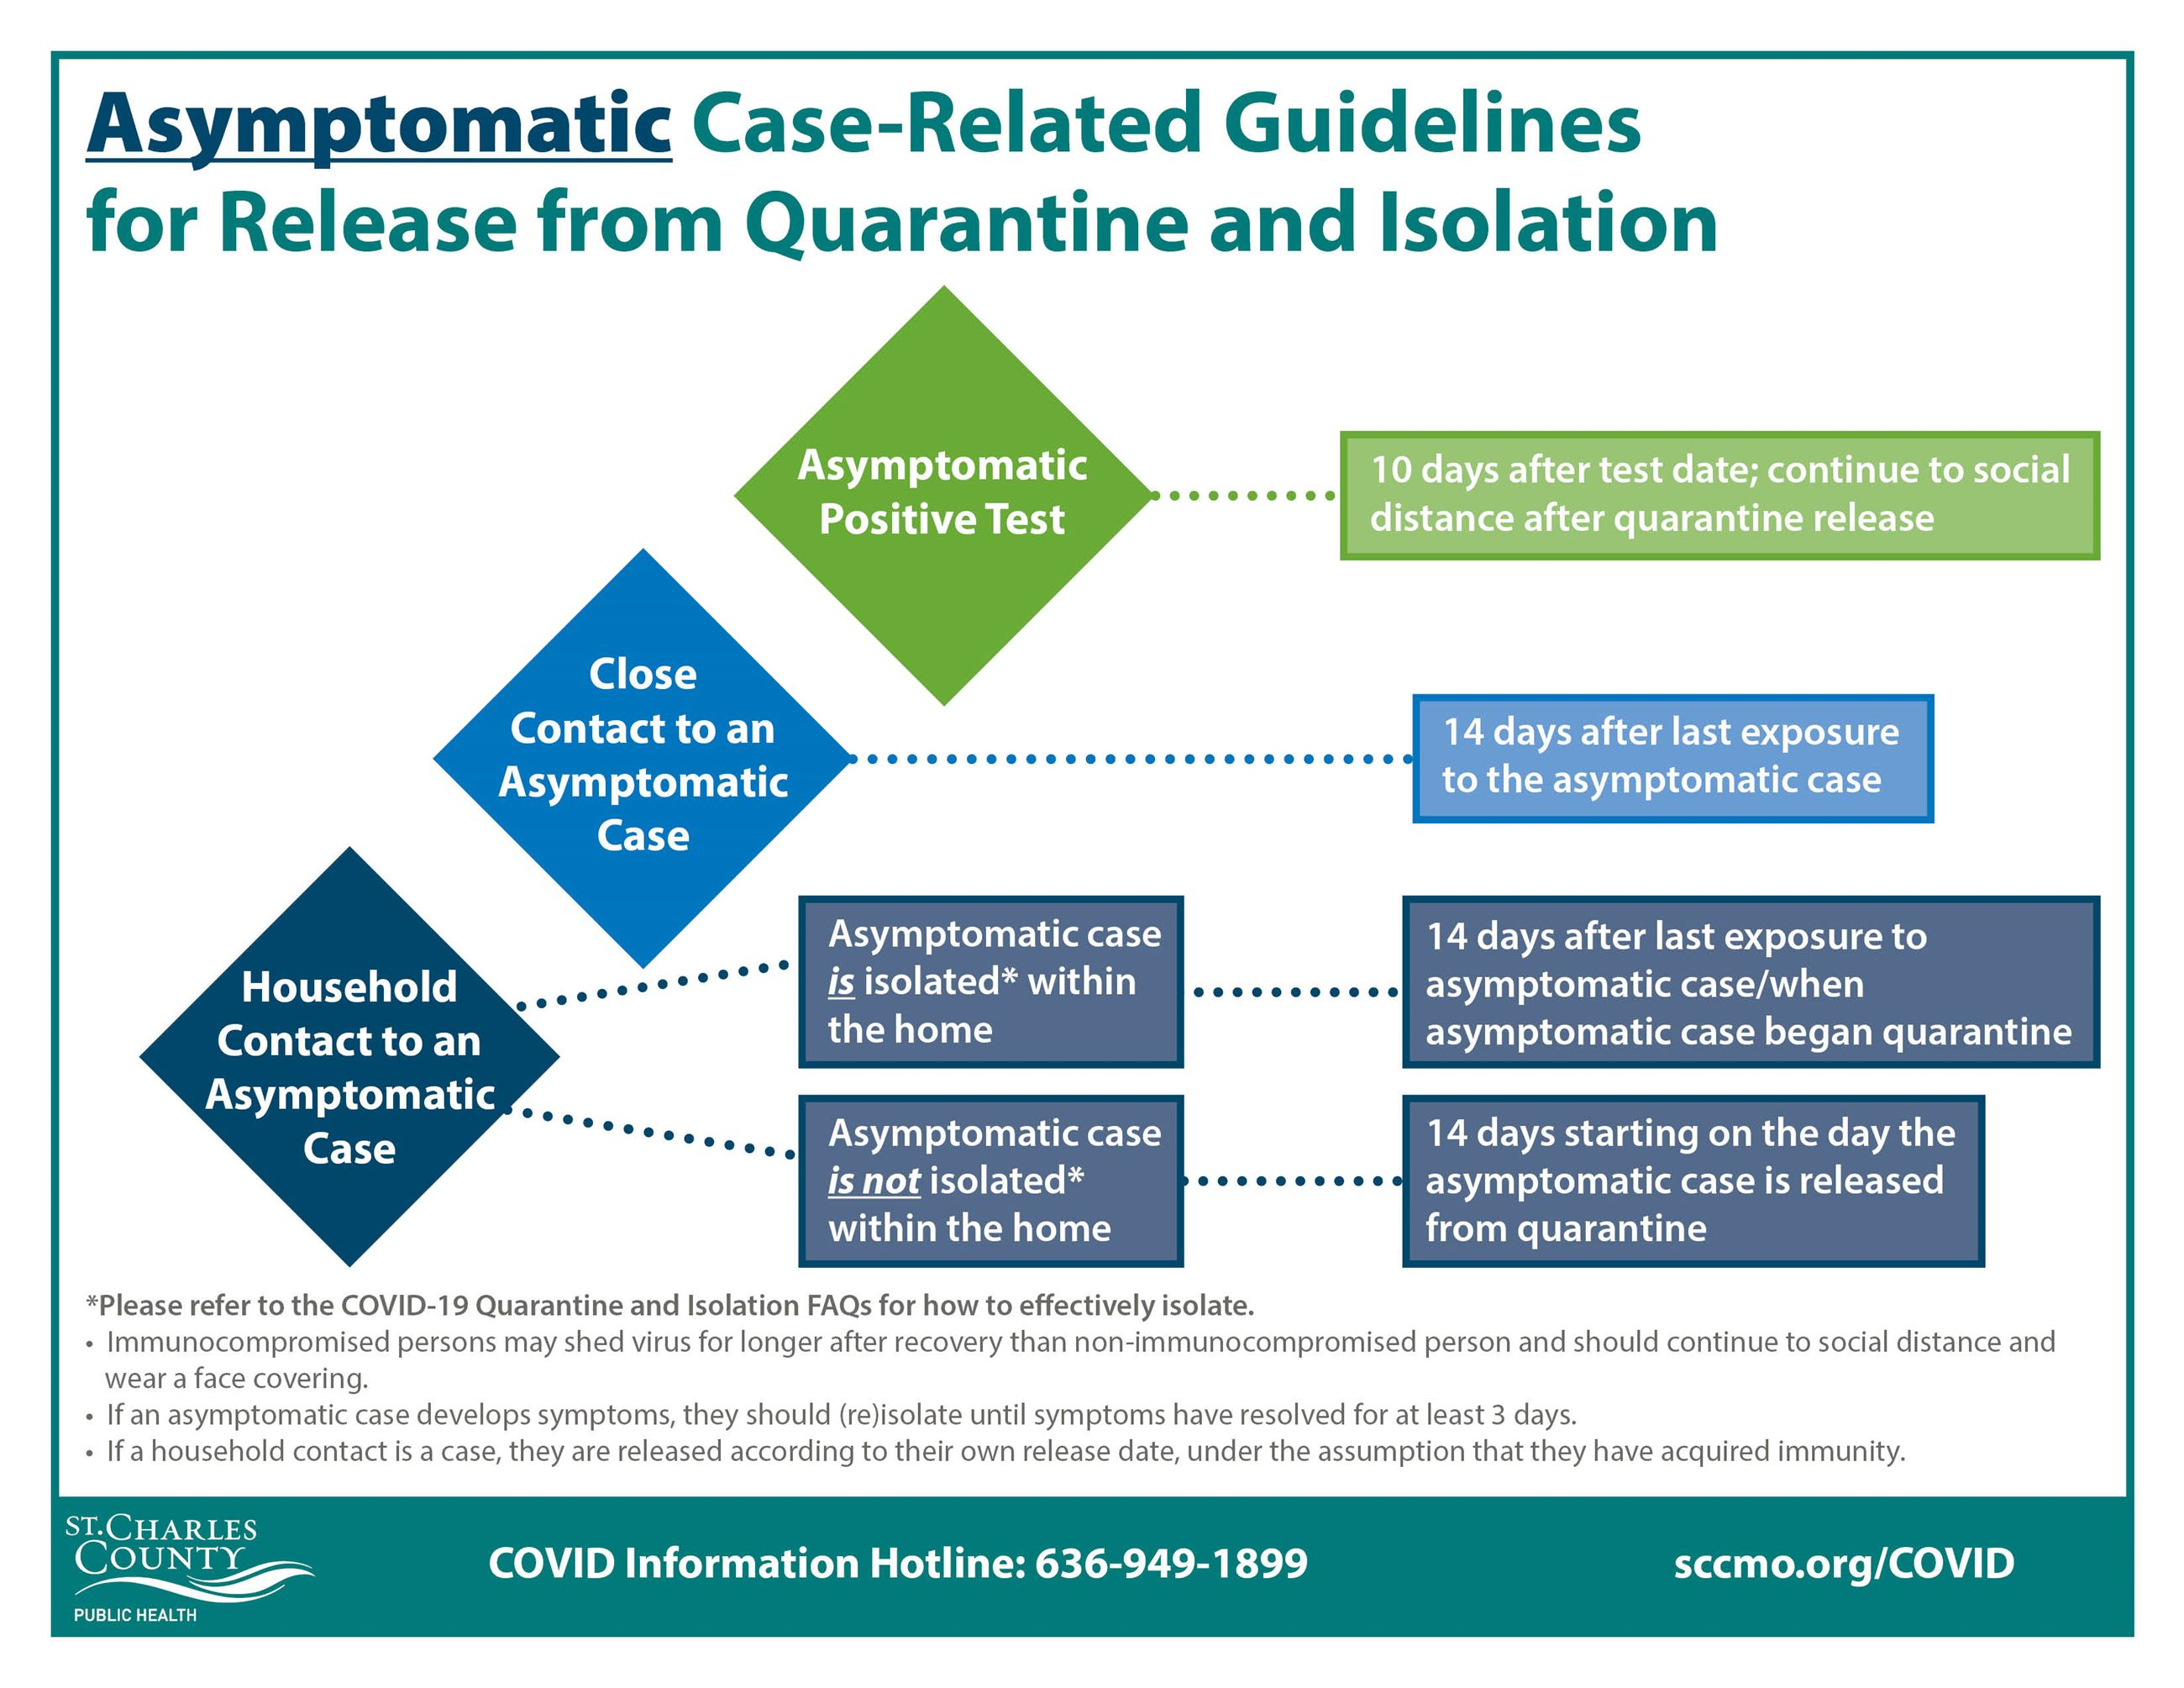 Guidelines for Release from Quarantine and Isolation for Asymptomatic Individuals